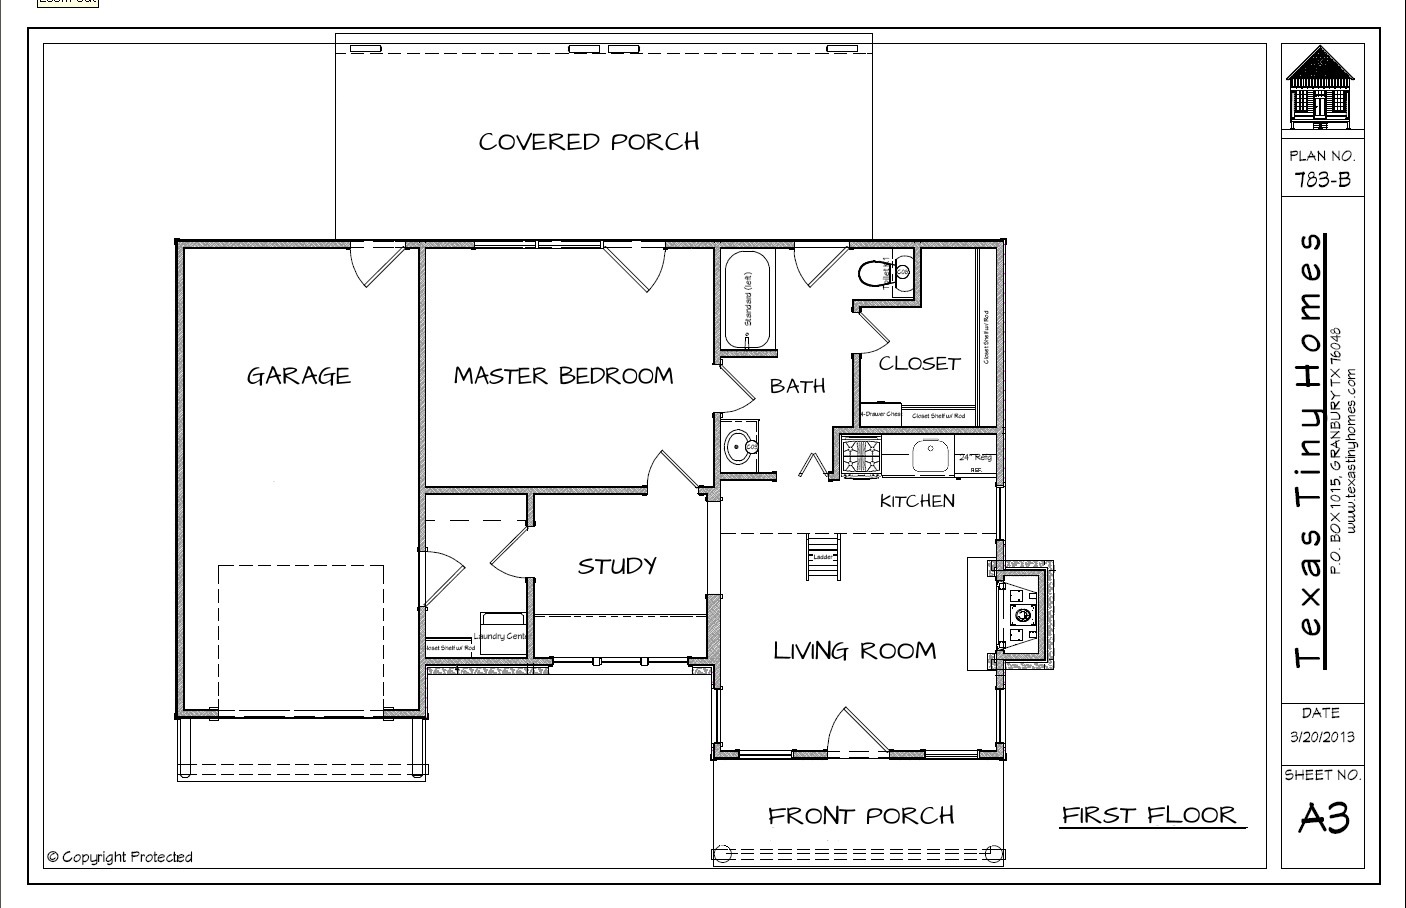 House plans for small homes tiny house plans home for Small house plans texas